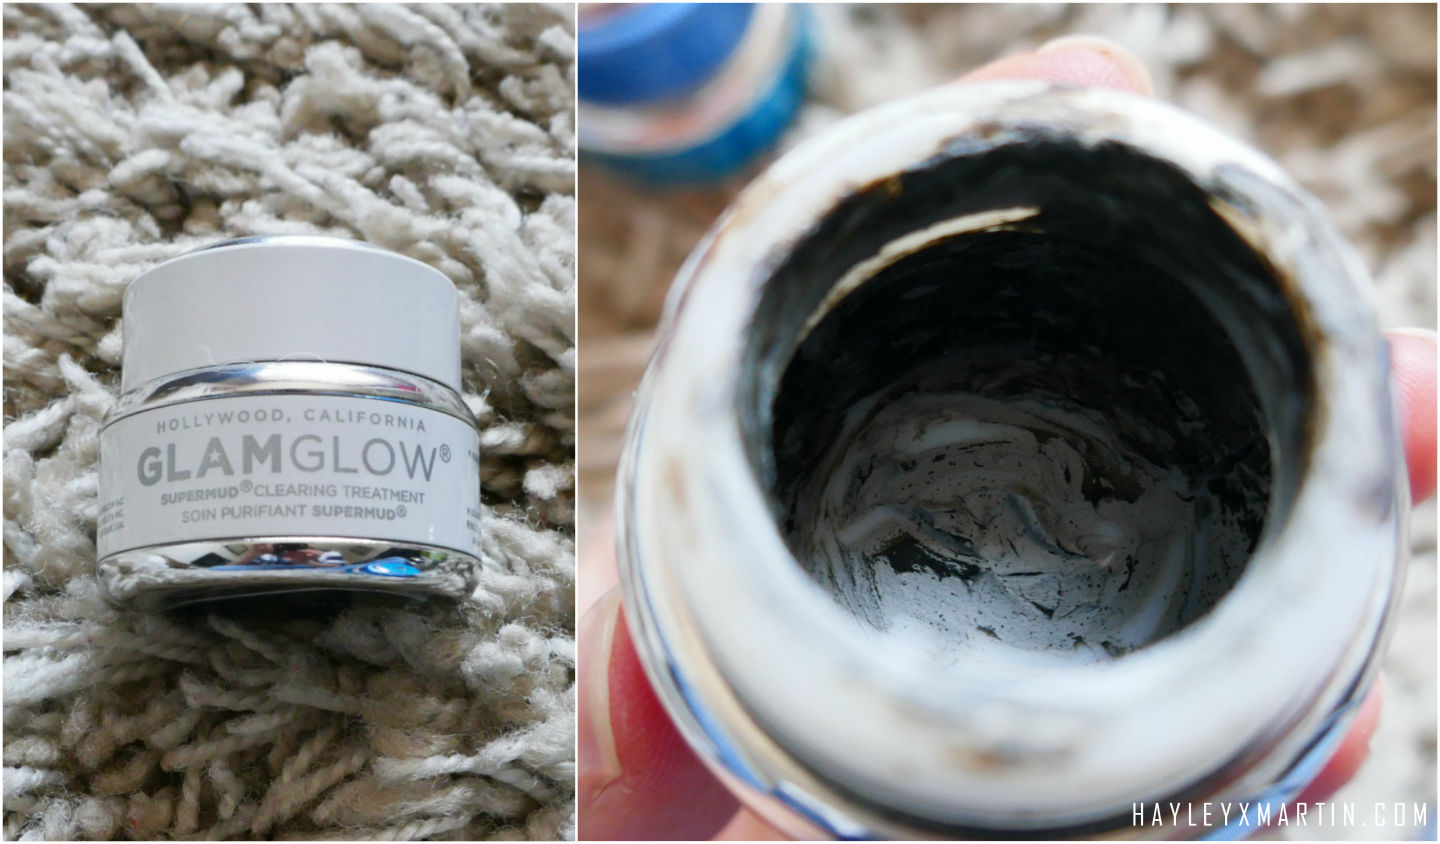 hayleyxmartin | GLAMGLOW SUPERMUD REVIEW